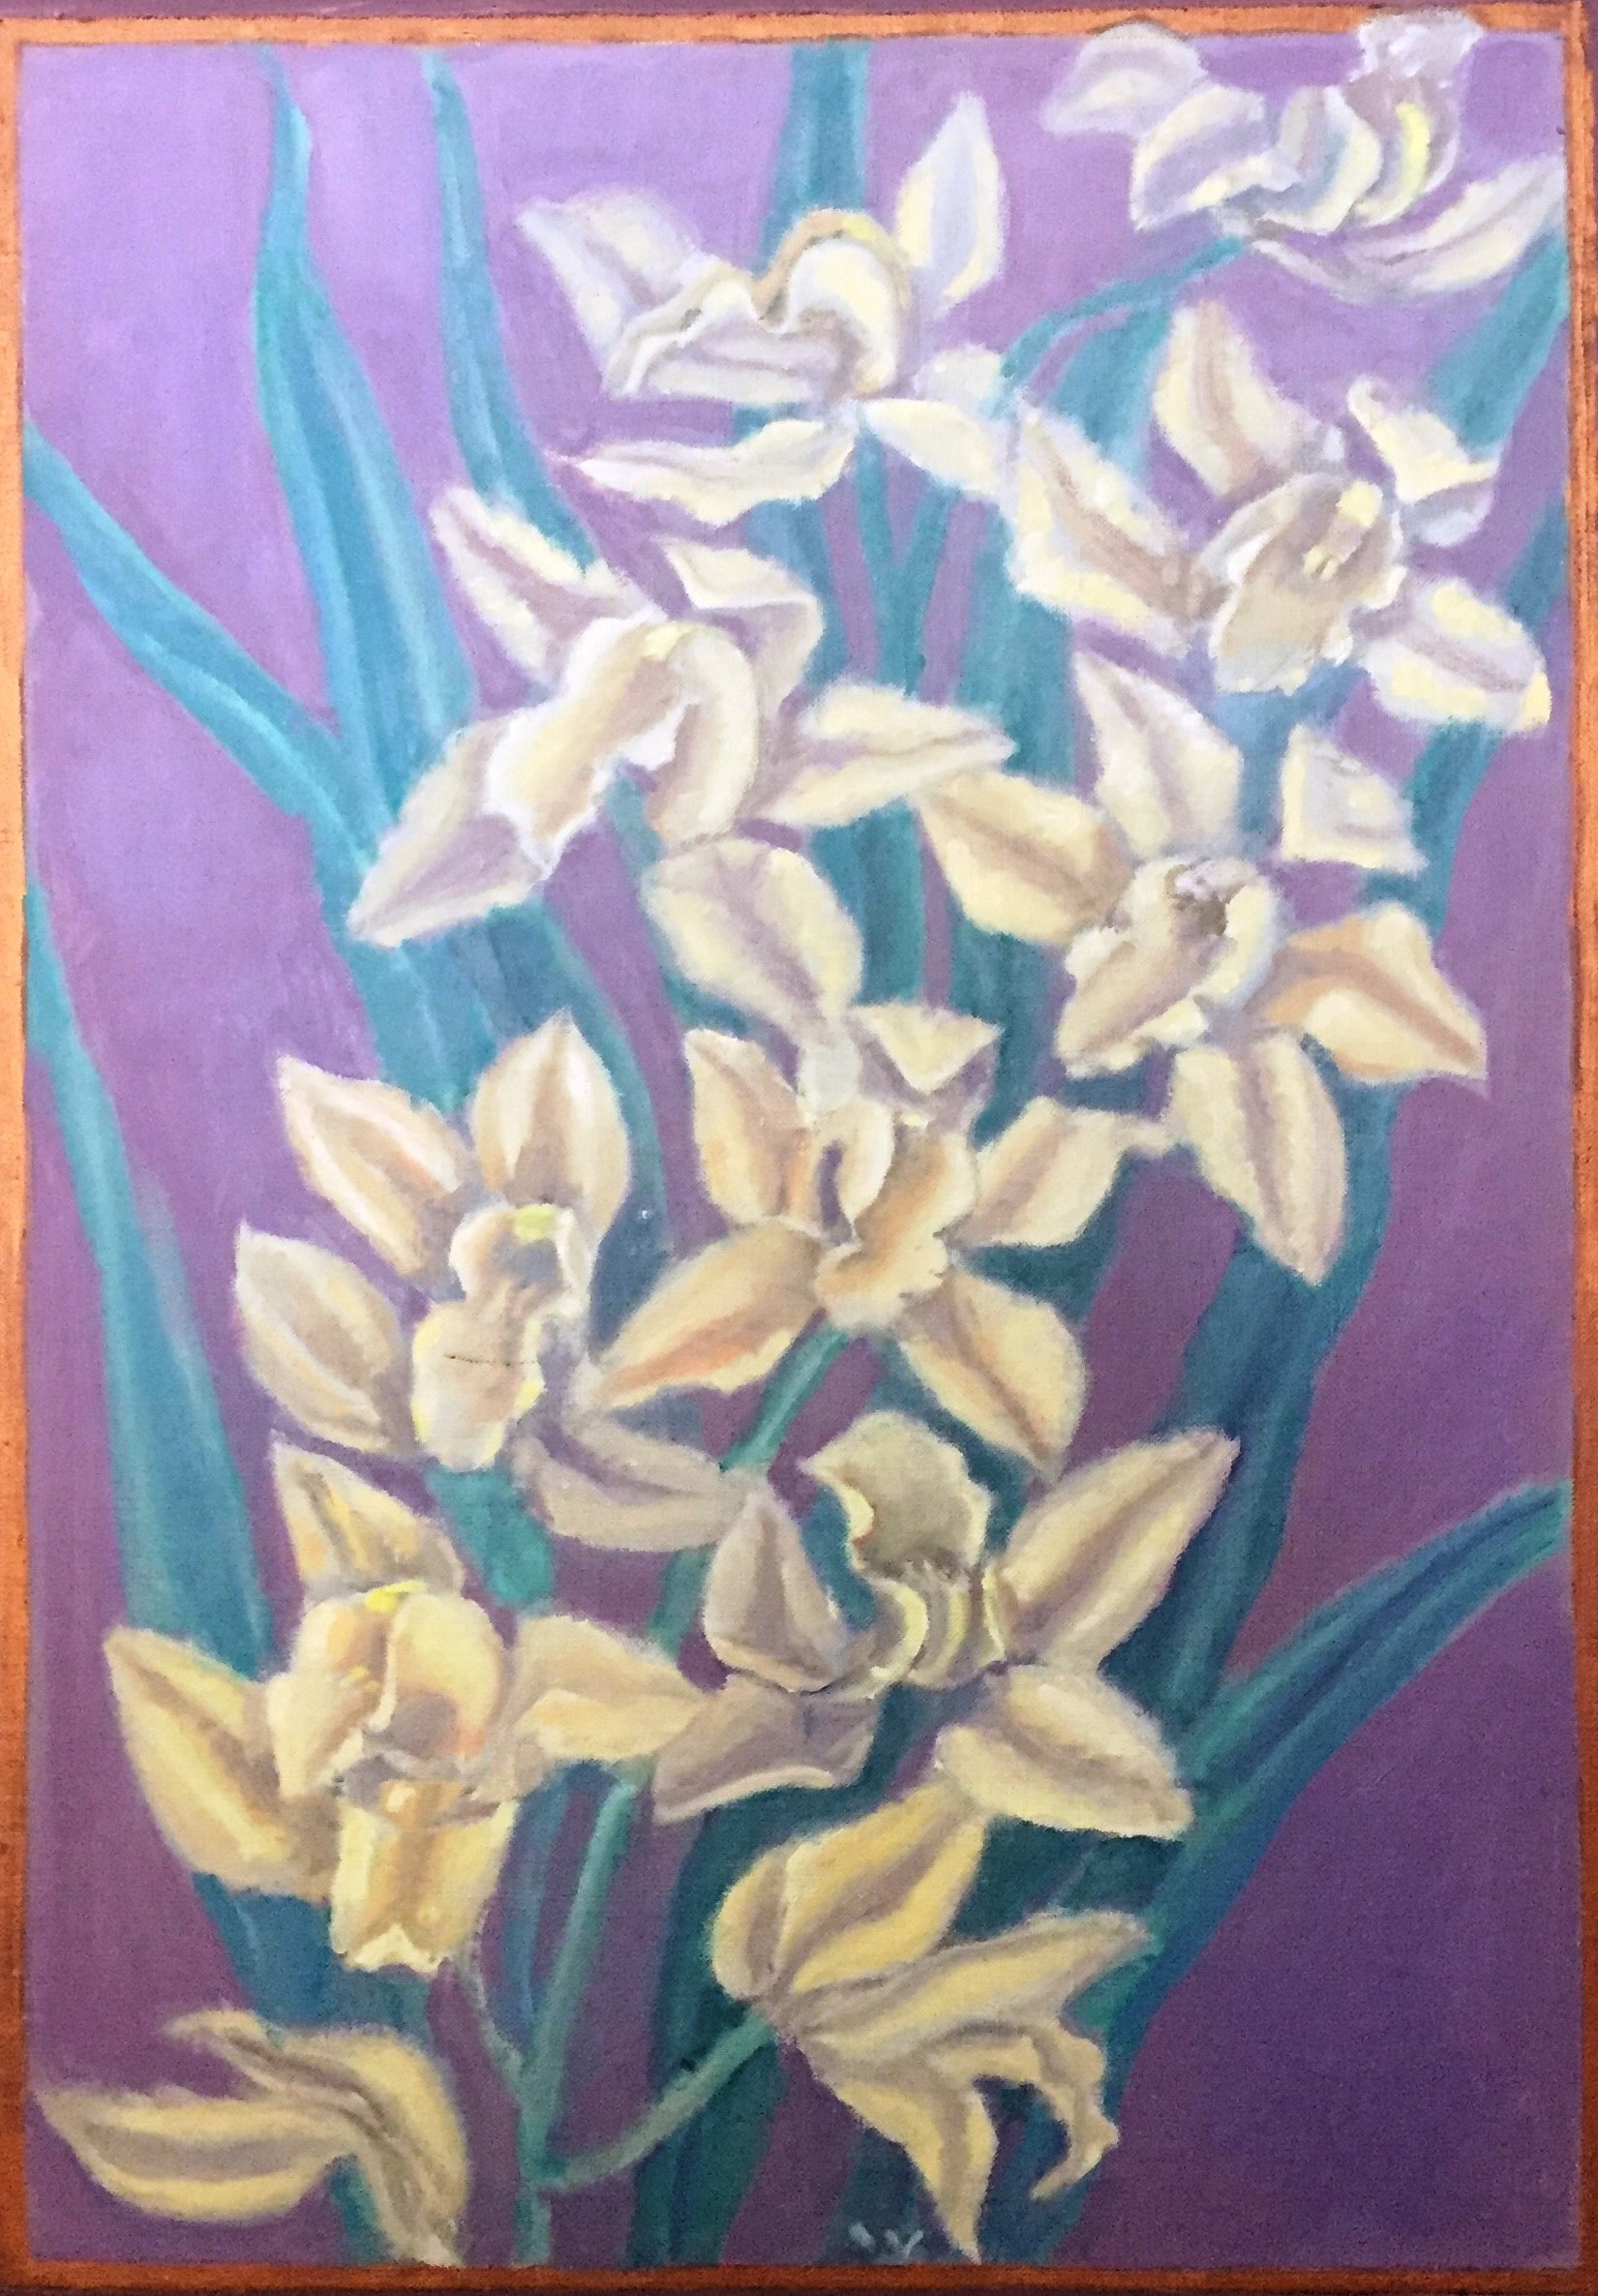 White Lilies artwork by Alan Stewart - art listed for sale on Artplode